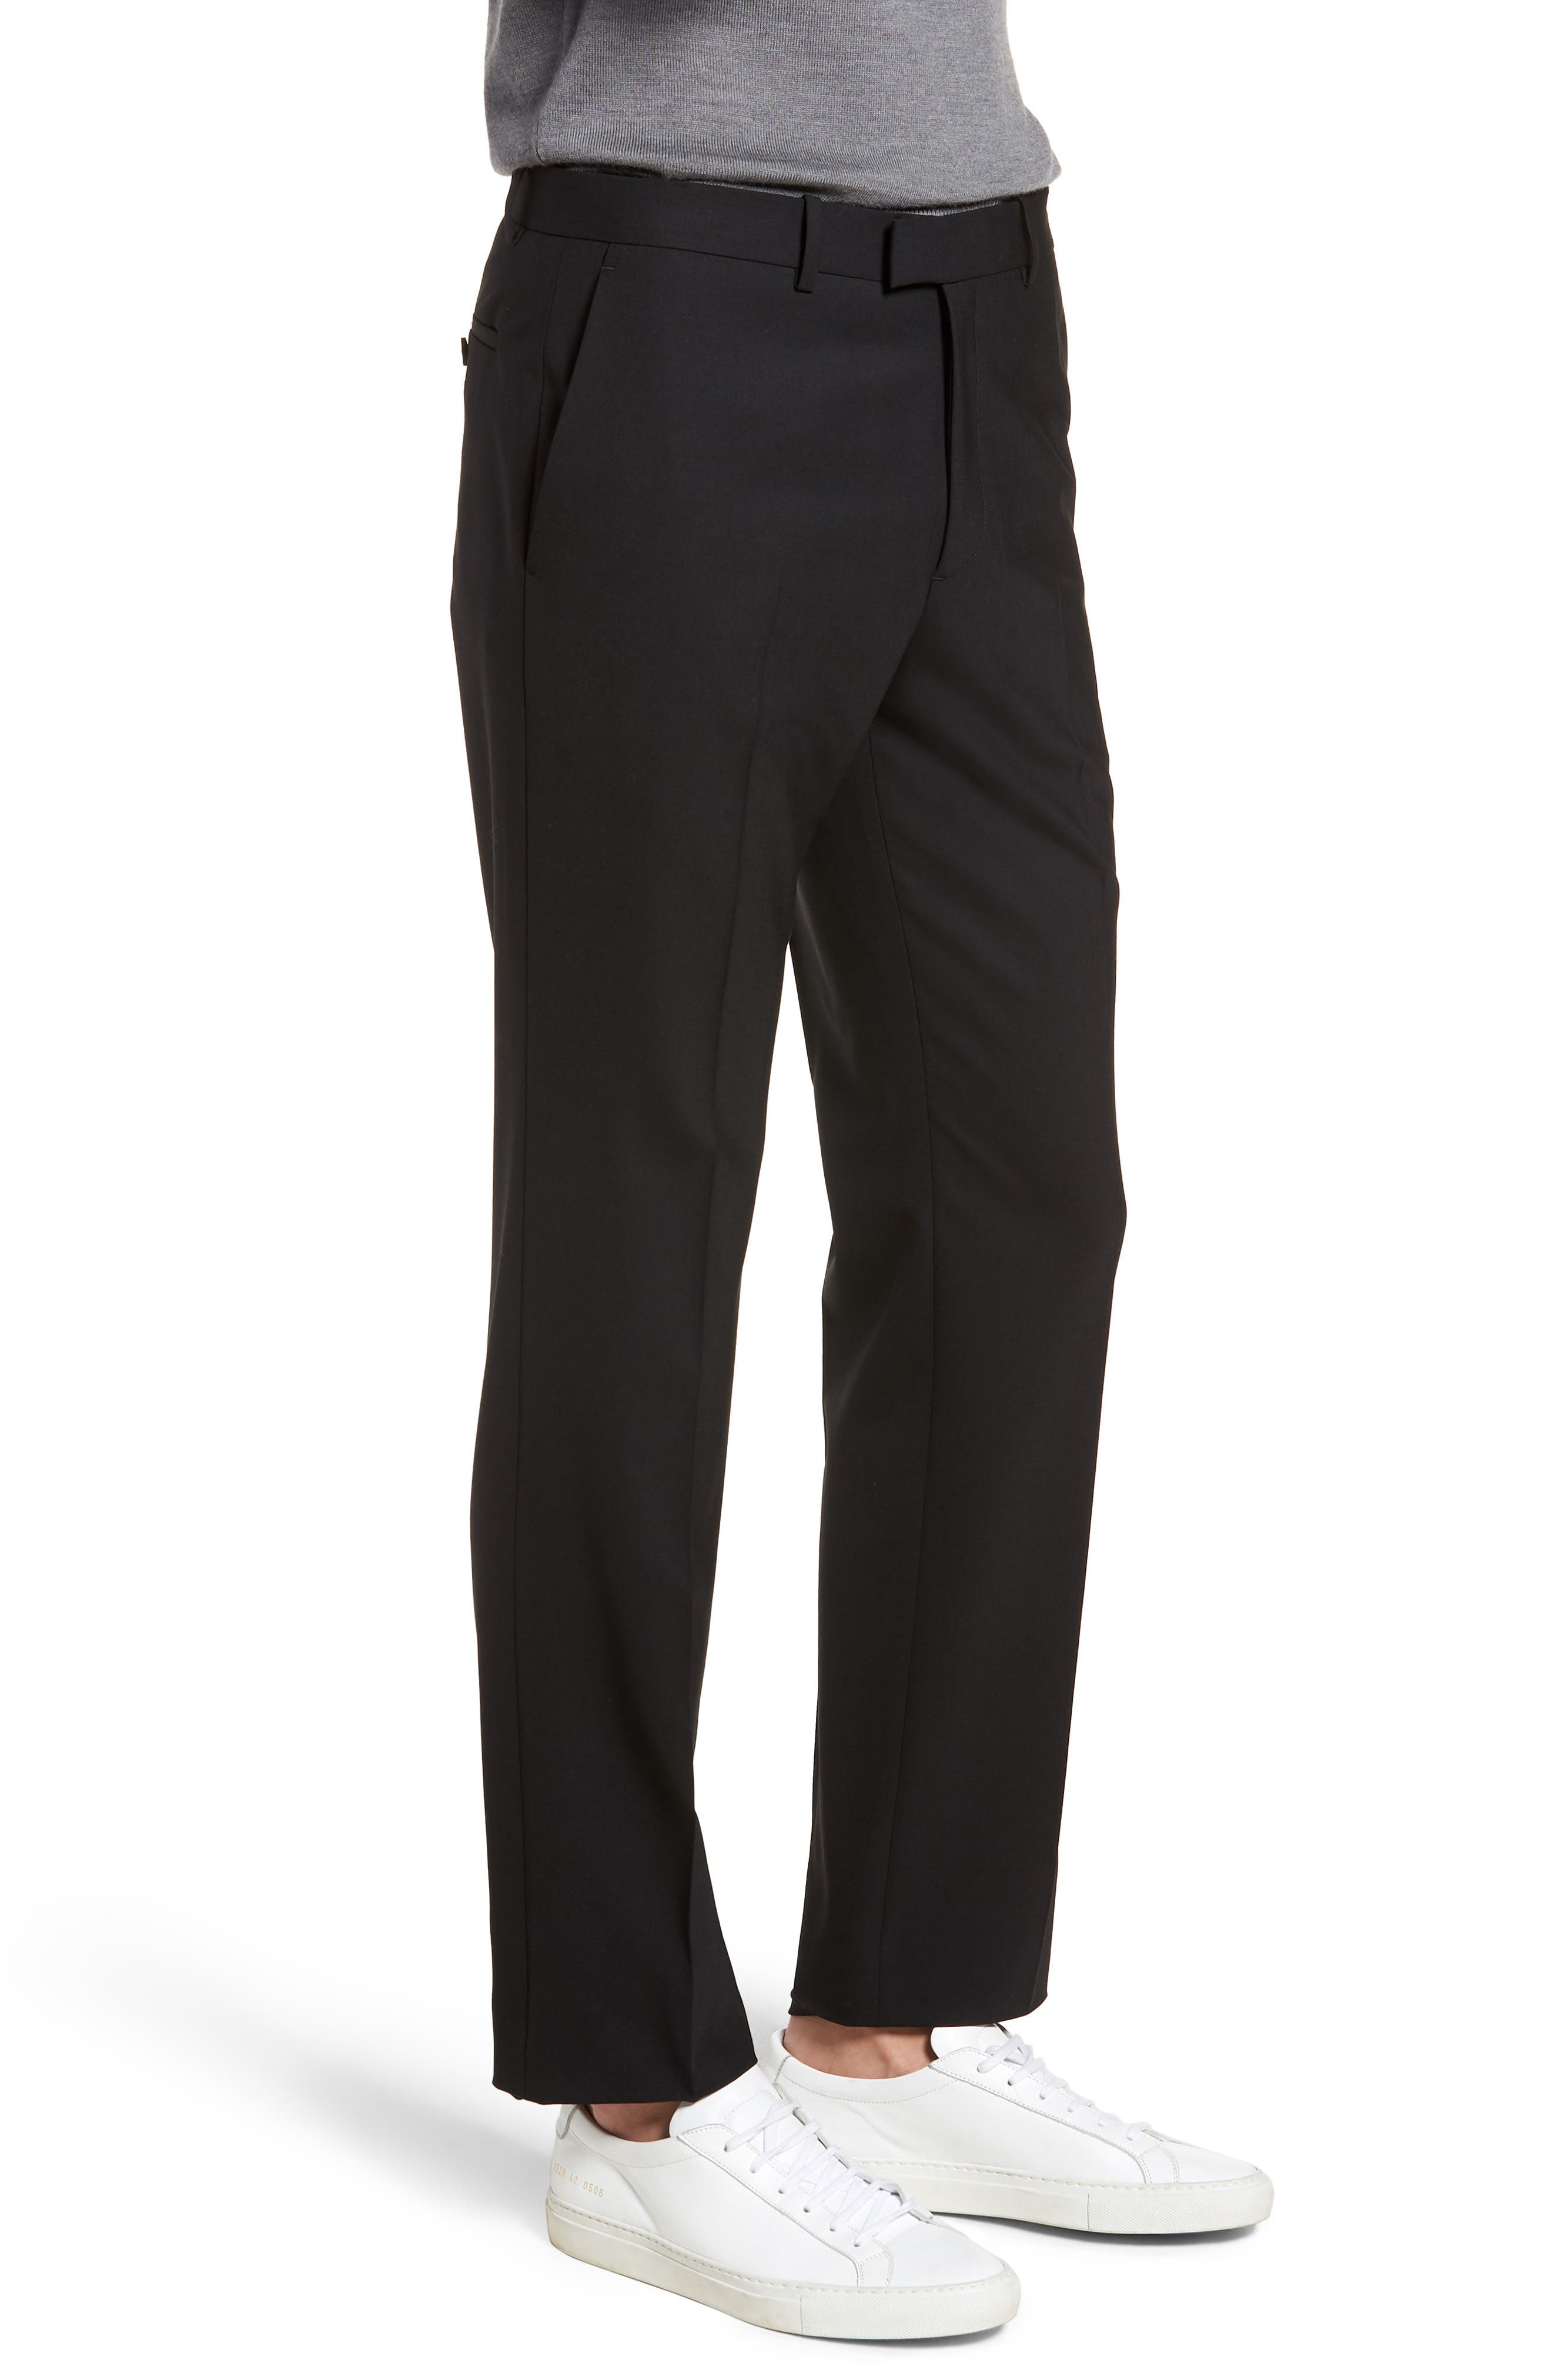 Marlo Flat Front Stretch Wool Pants,                             Alternate thumbnail 3, color,                             001